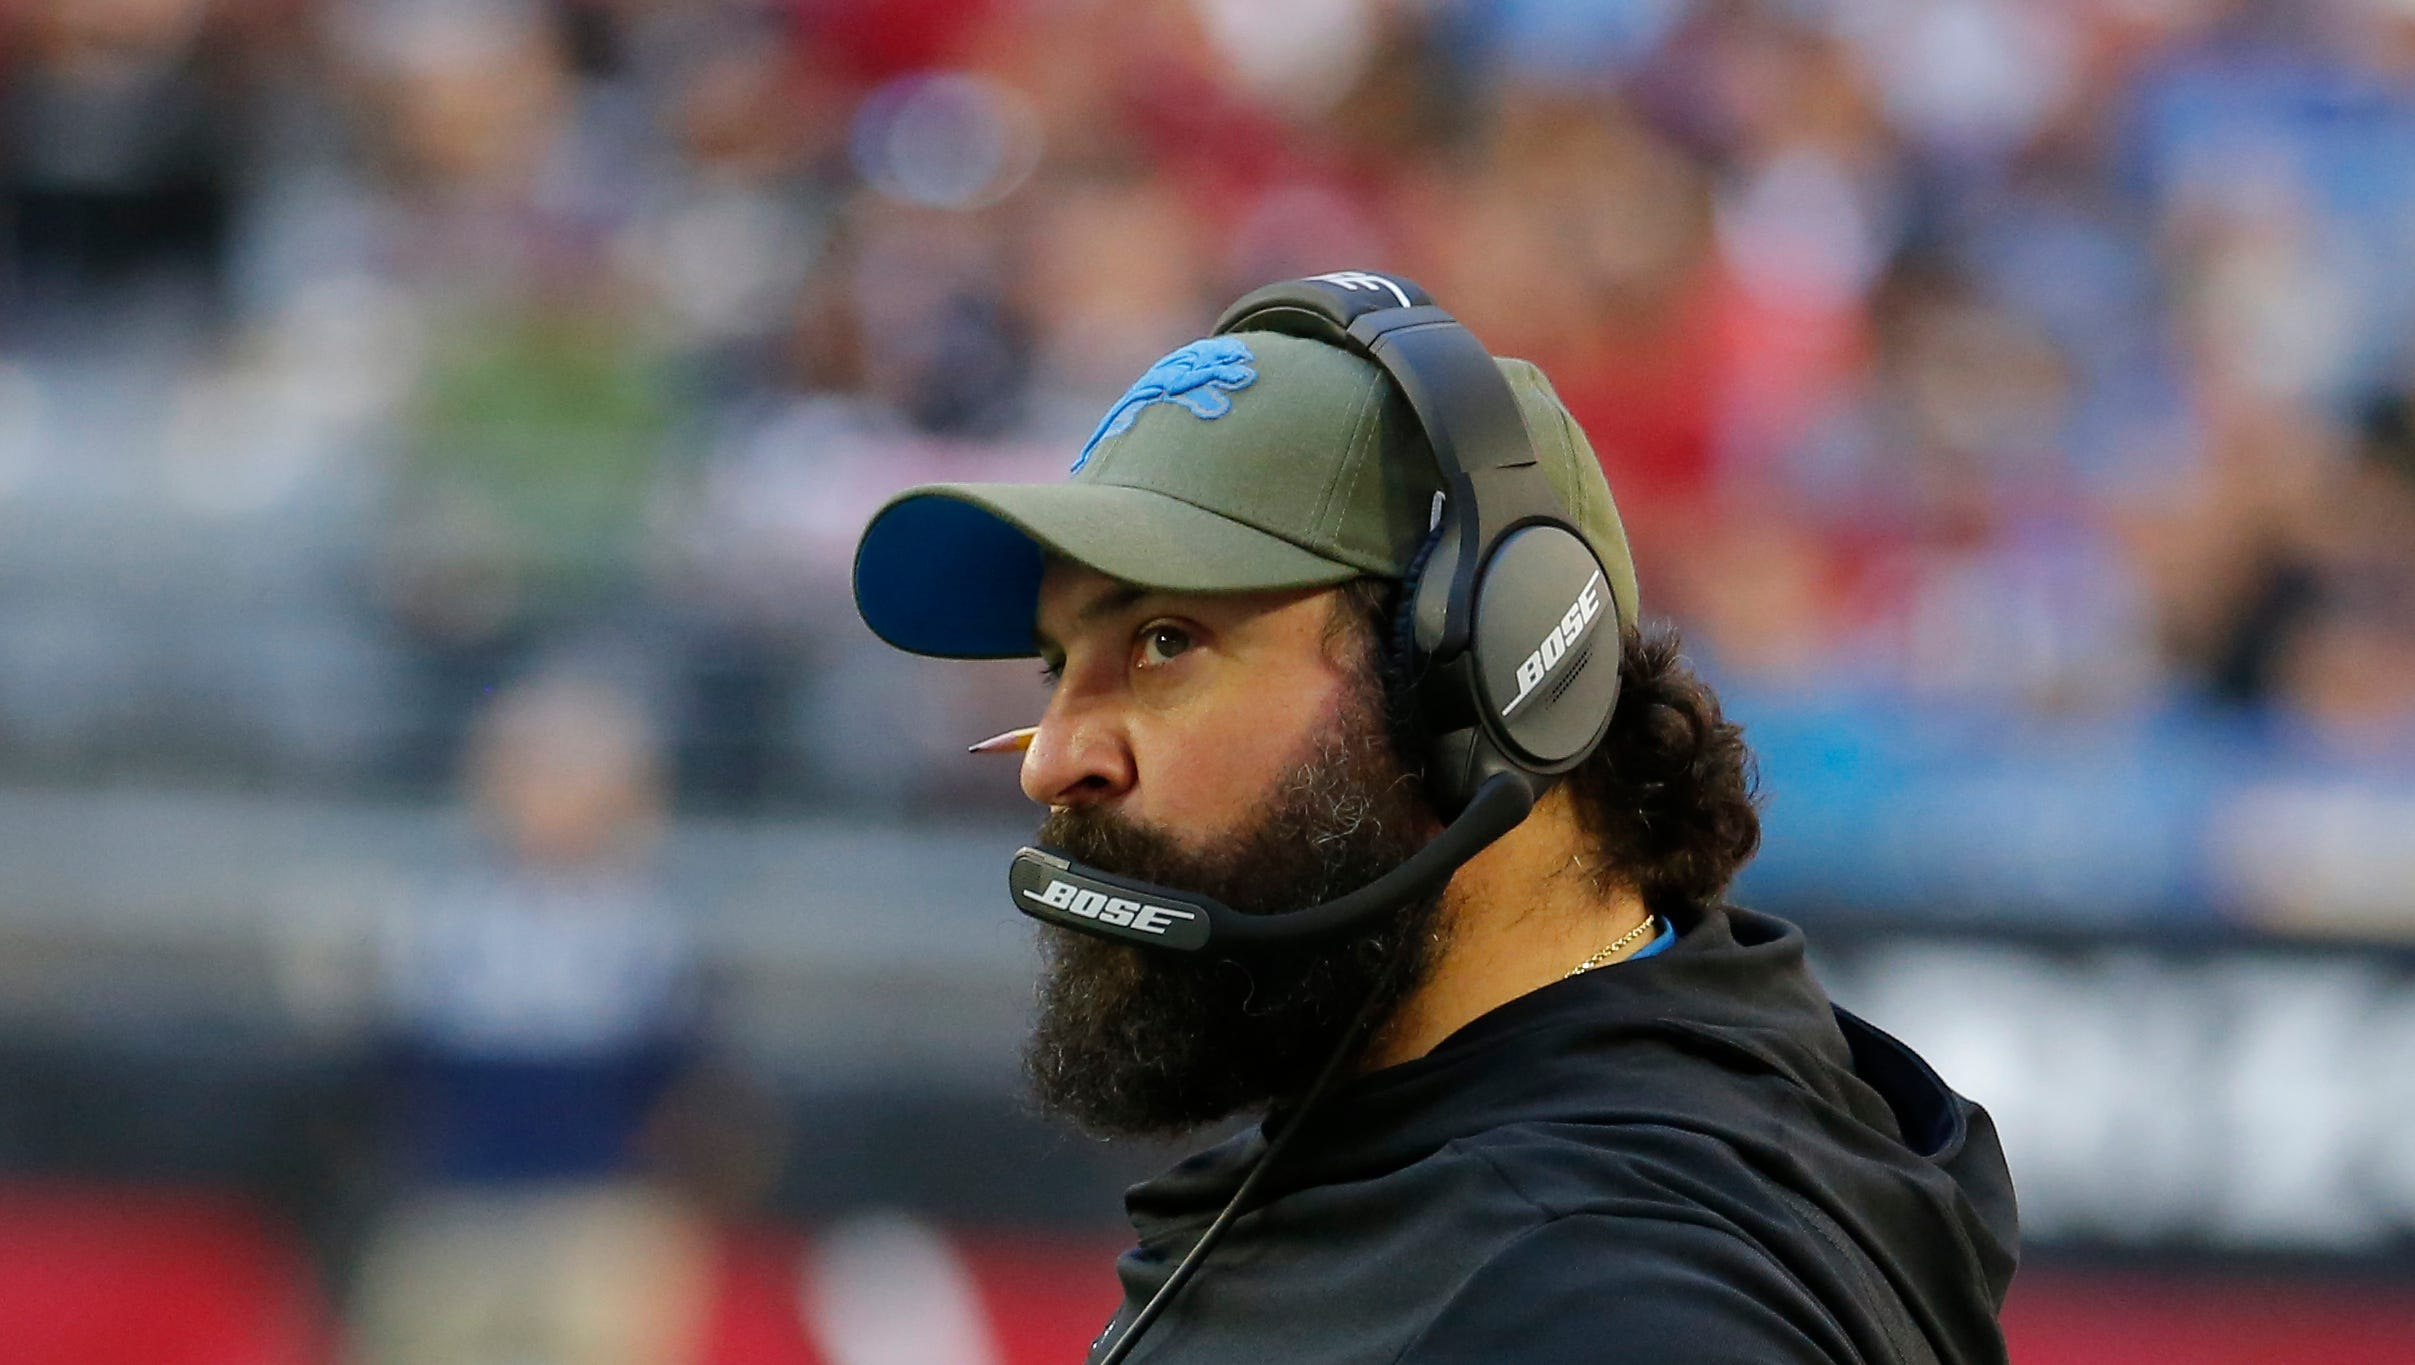 Up next for Bills, a 5-win Detroit Lions team still in the playoff hunt in muddled NFC